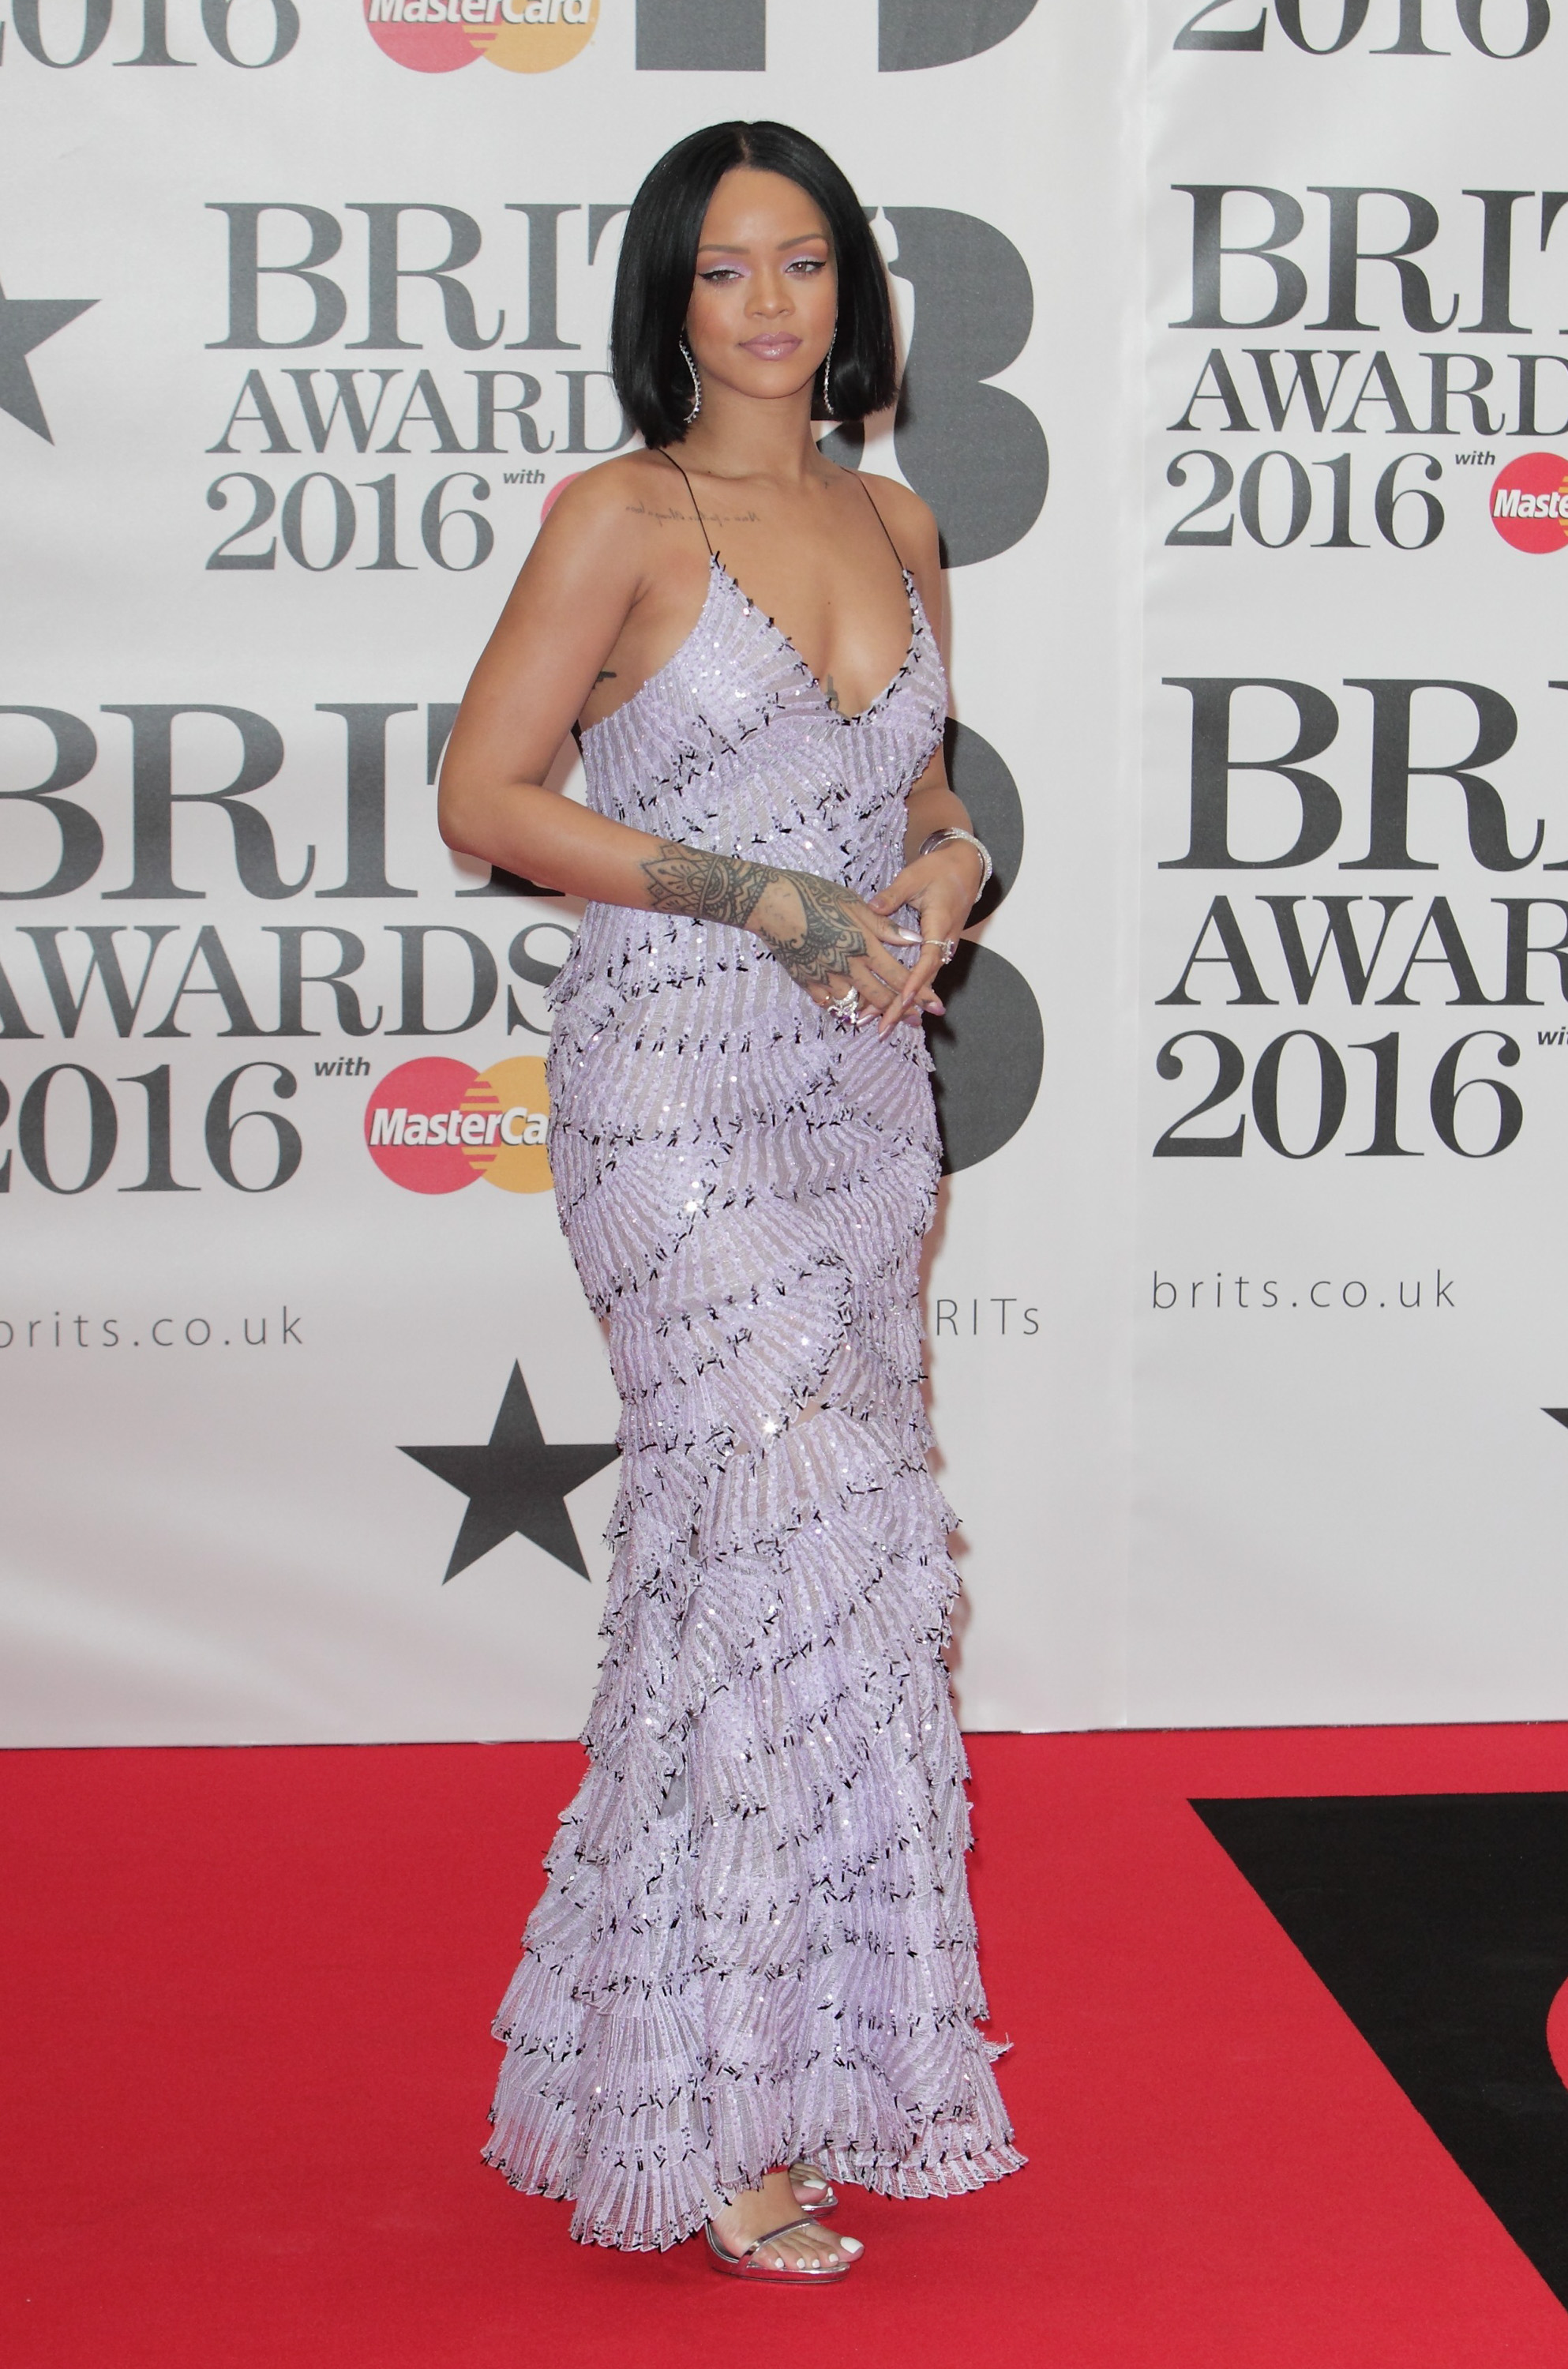 The BRIT Awards red carpet was a hot mess and even Adele couldn't save it [GALLERY]